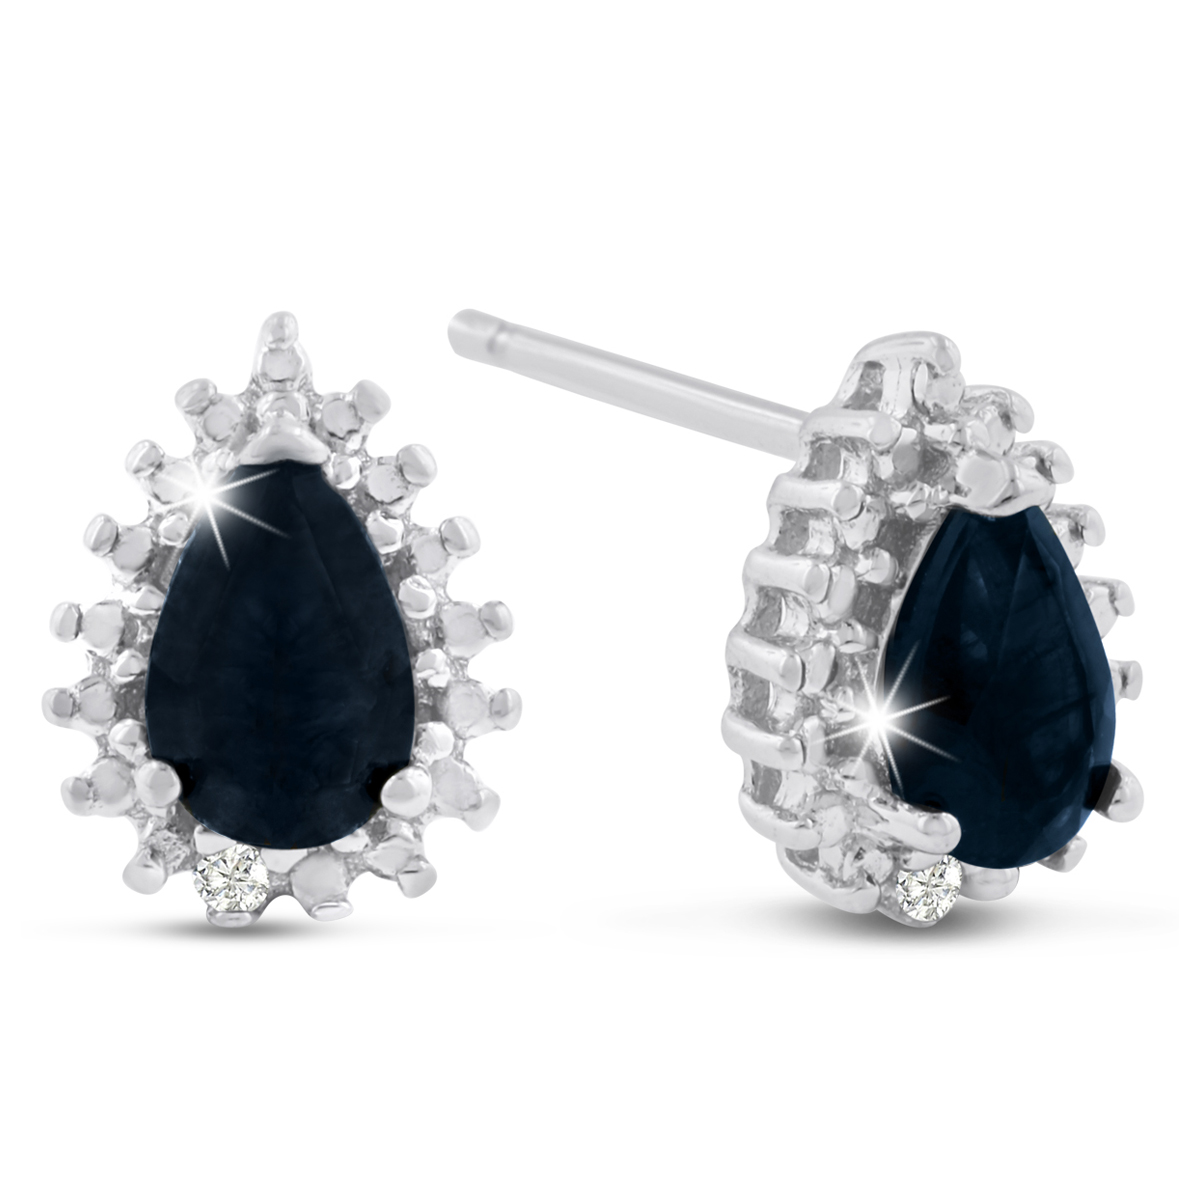 1 Carat Pear Shape Sapphire and Diamond Halo Stud Earrings In Sterling